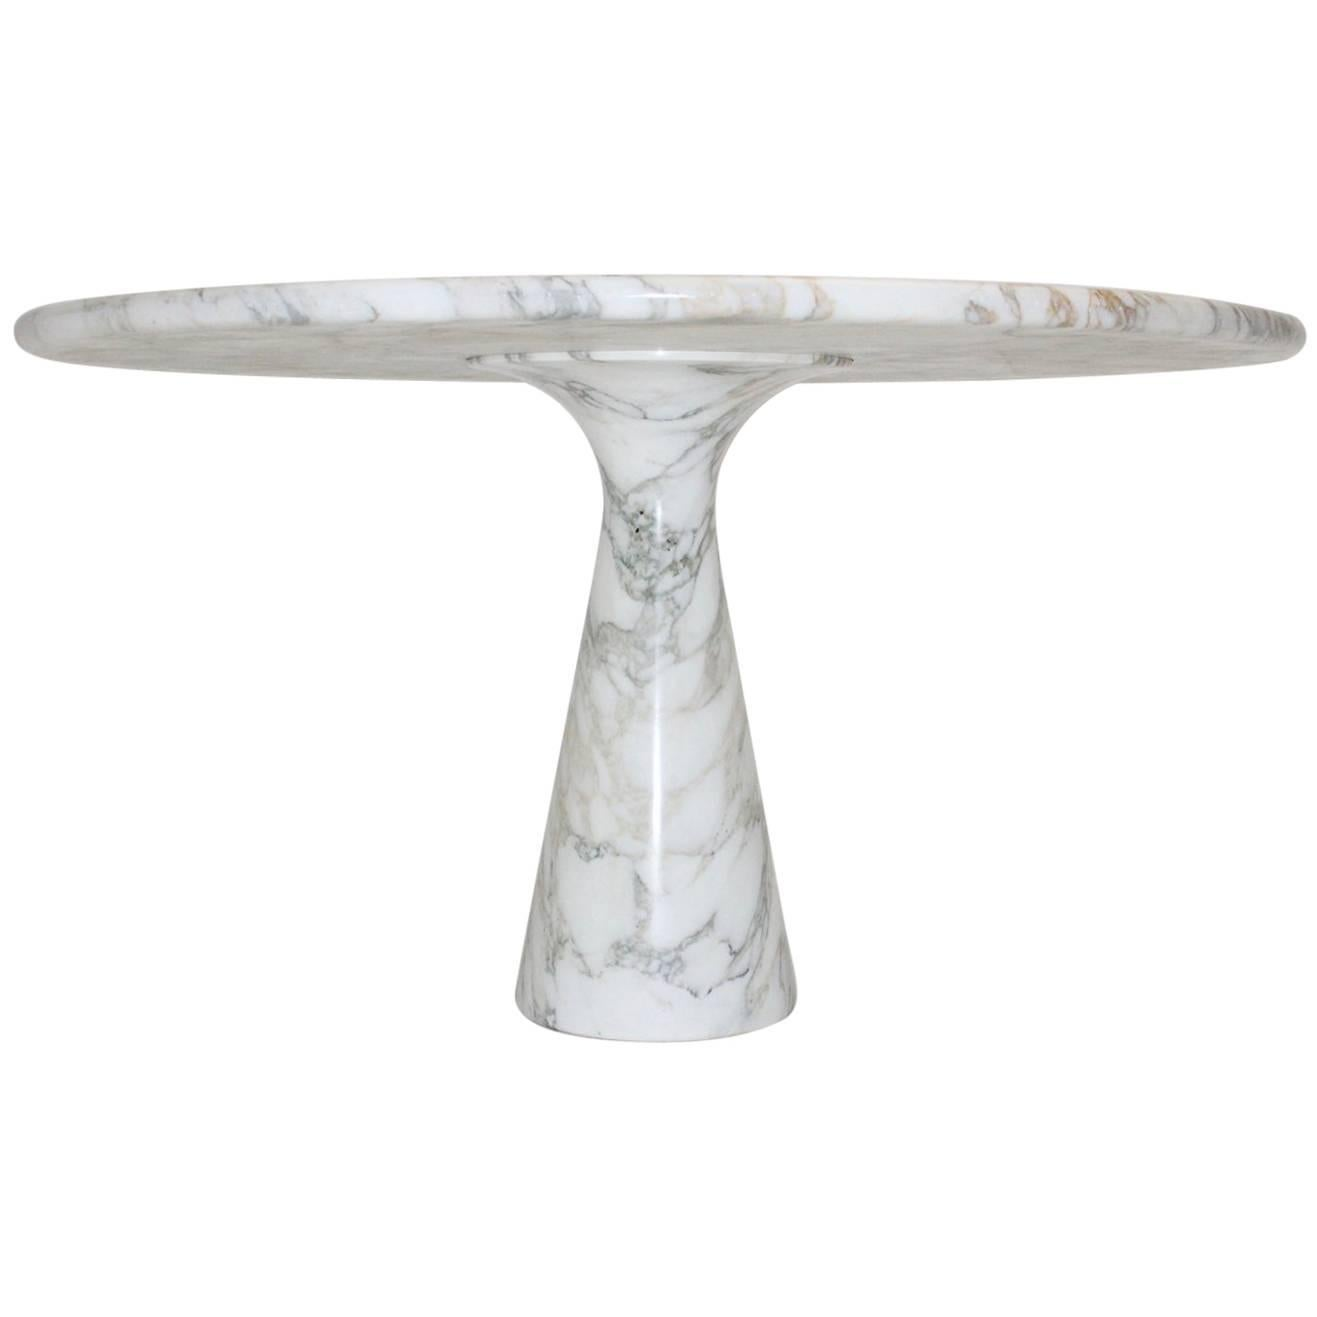 Marble Black White Vintage Dining Table by Angelo Mangiarotti T 70 1969 Italy